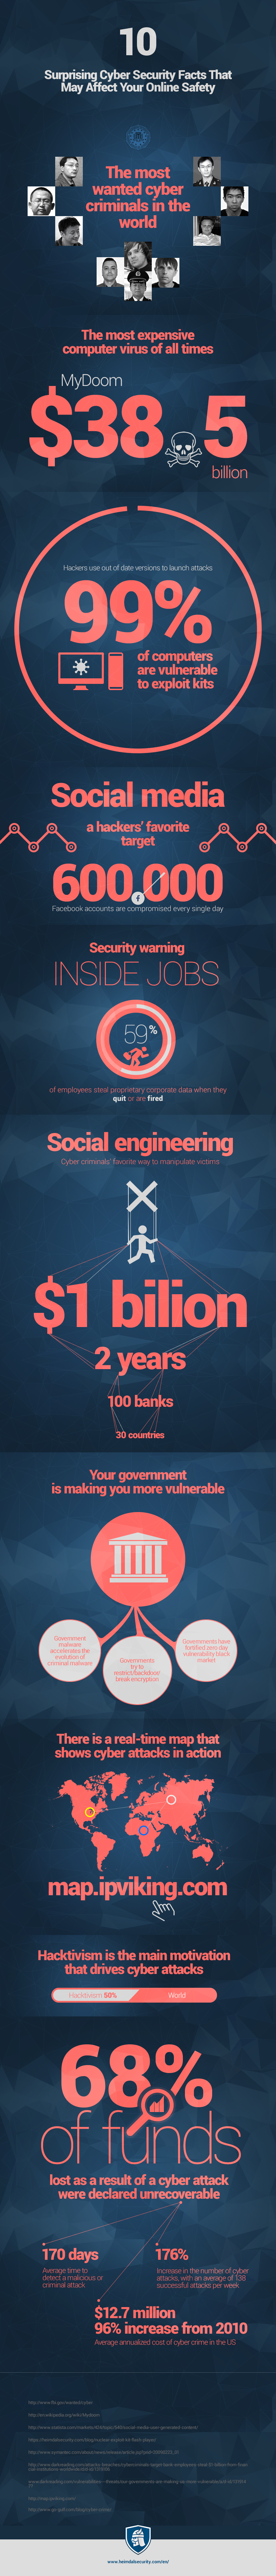 10 Hacking Facts Infographic